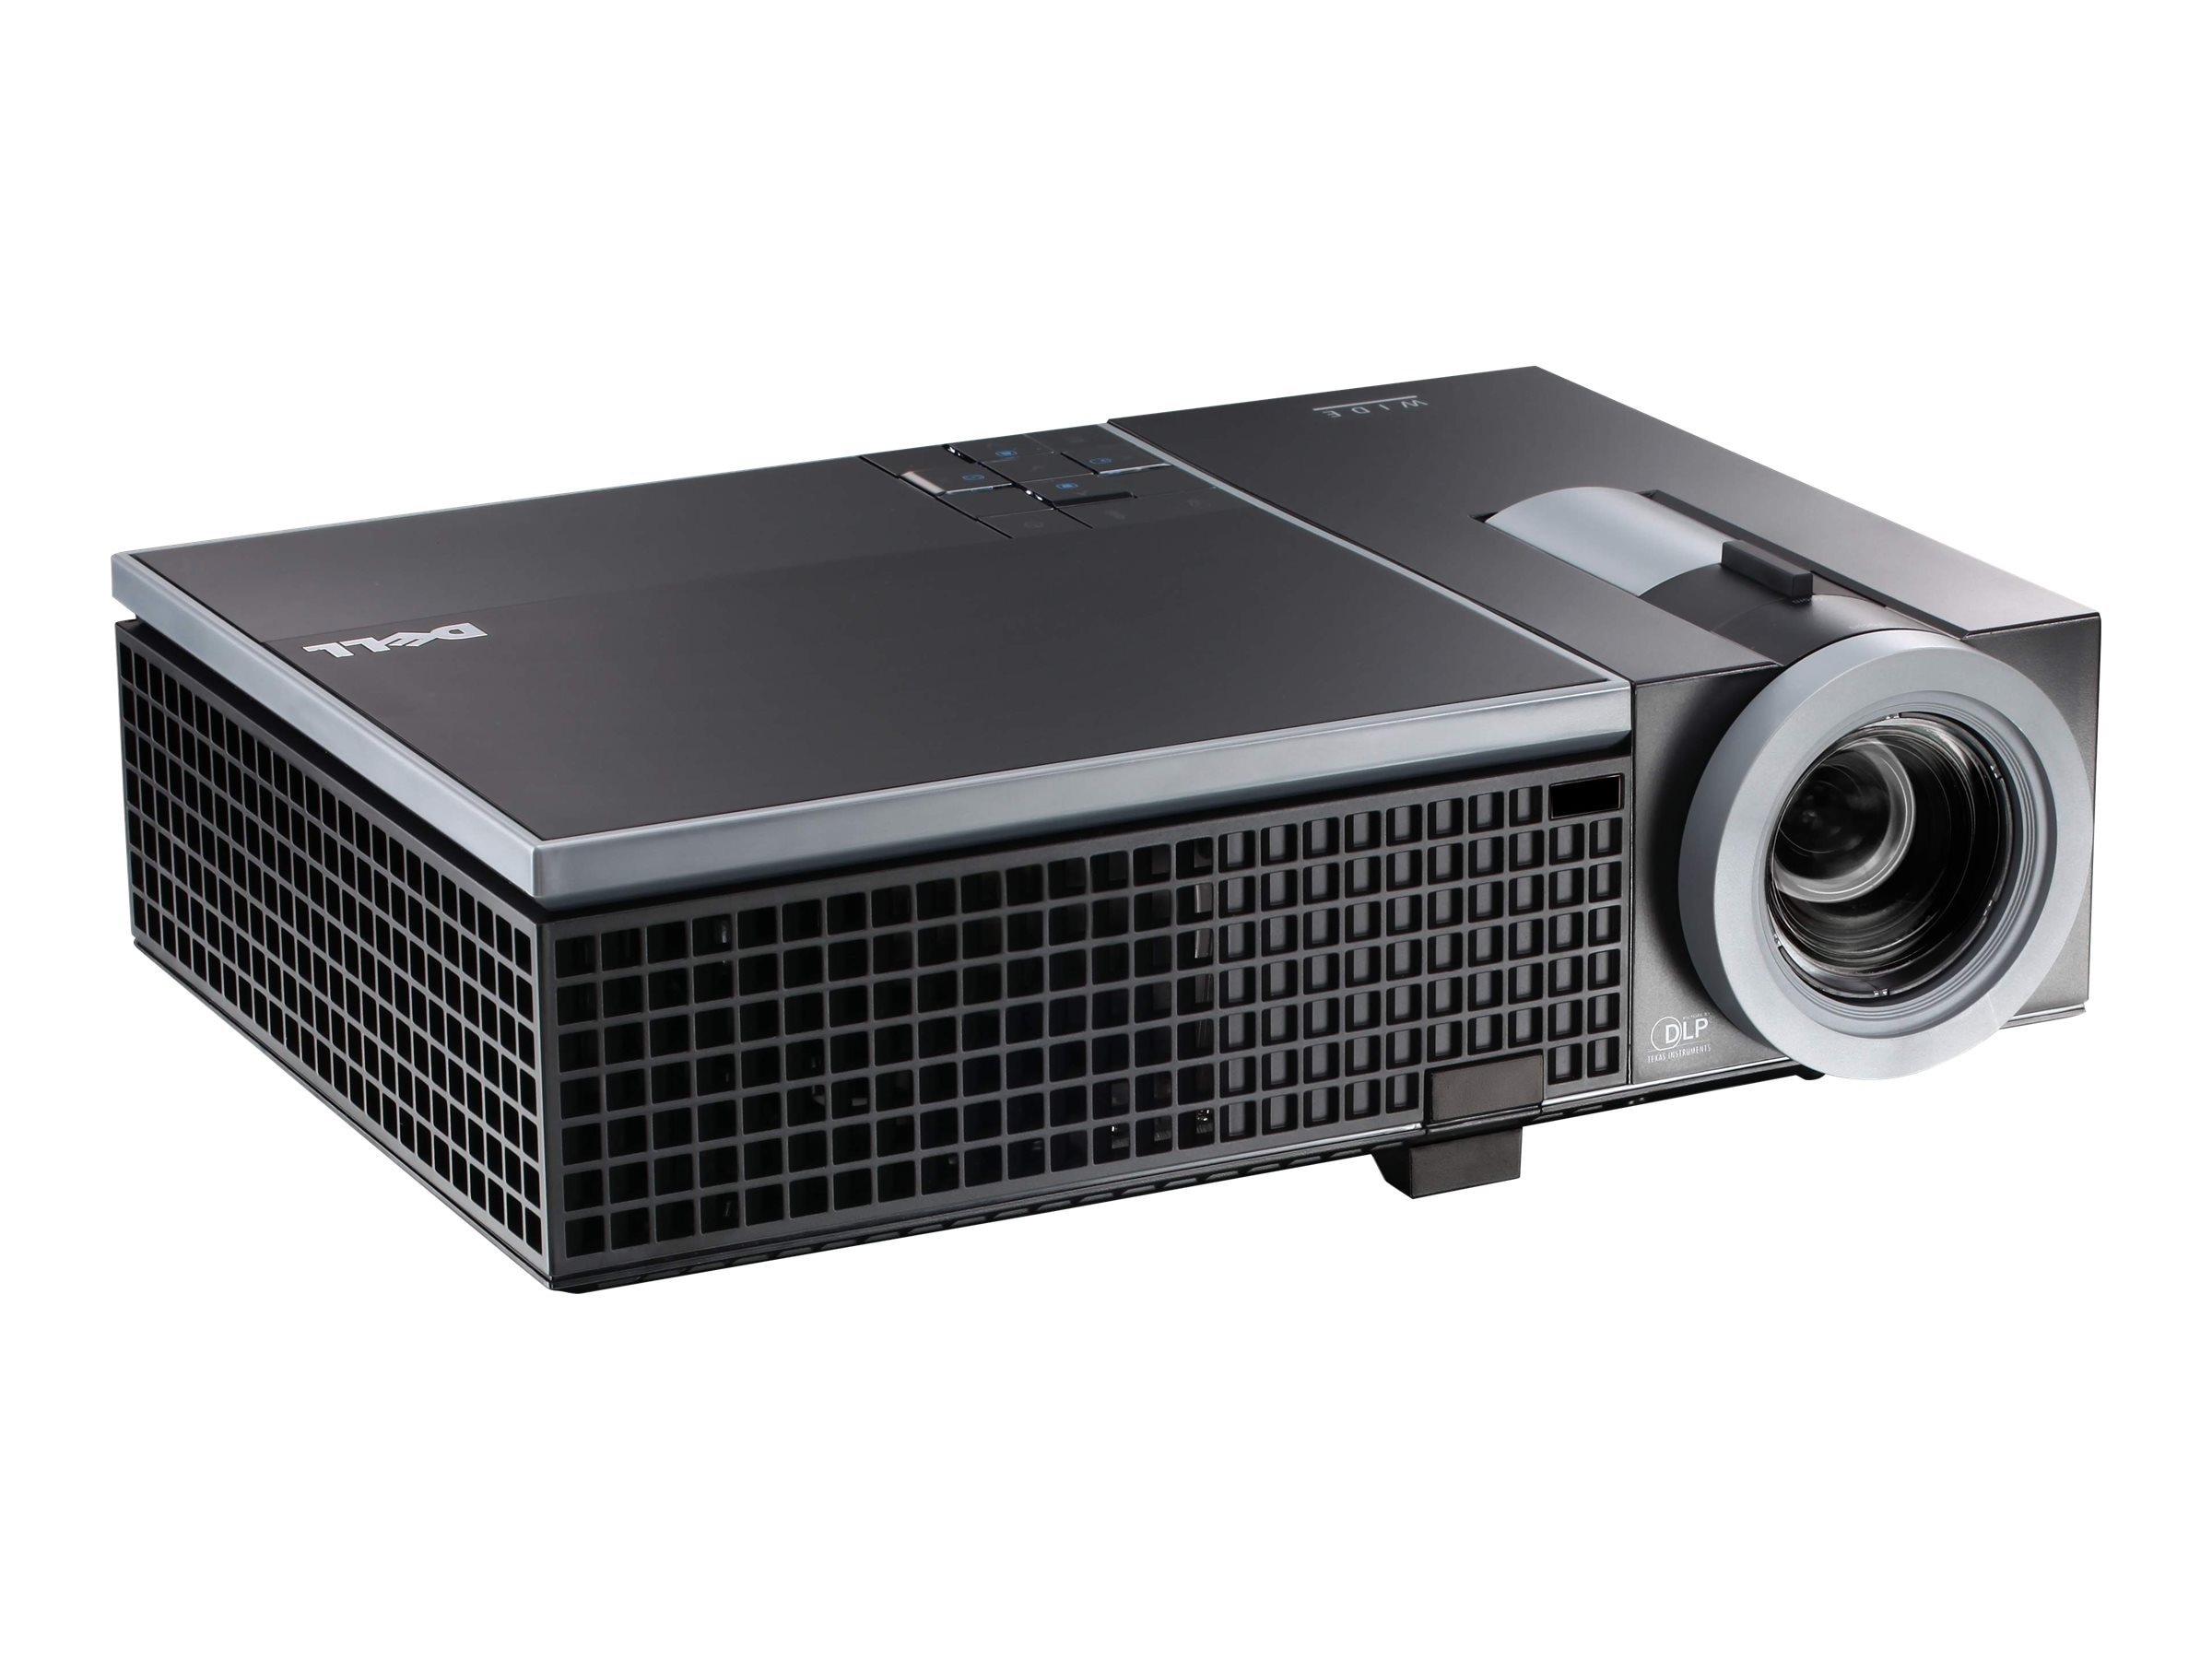 Dell 1610HD WXGA DLP Projector, 3500 Lumens, Black, 1610HD, 11937763, Projectors